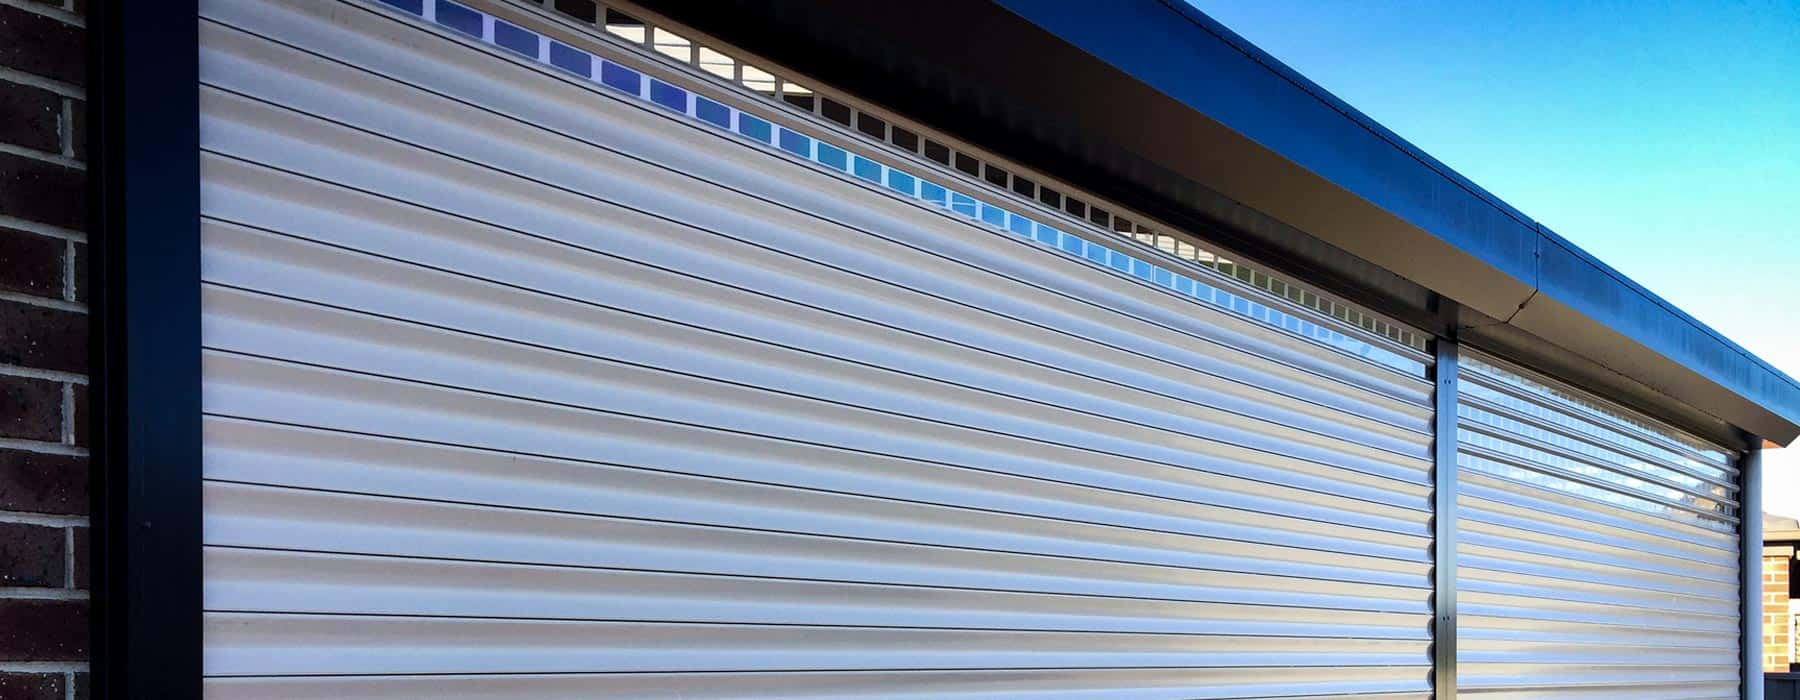 King Shutters & Screens - Shopfront Commercial Roller Shutters in Melbourne VIC